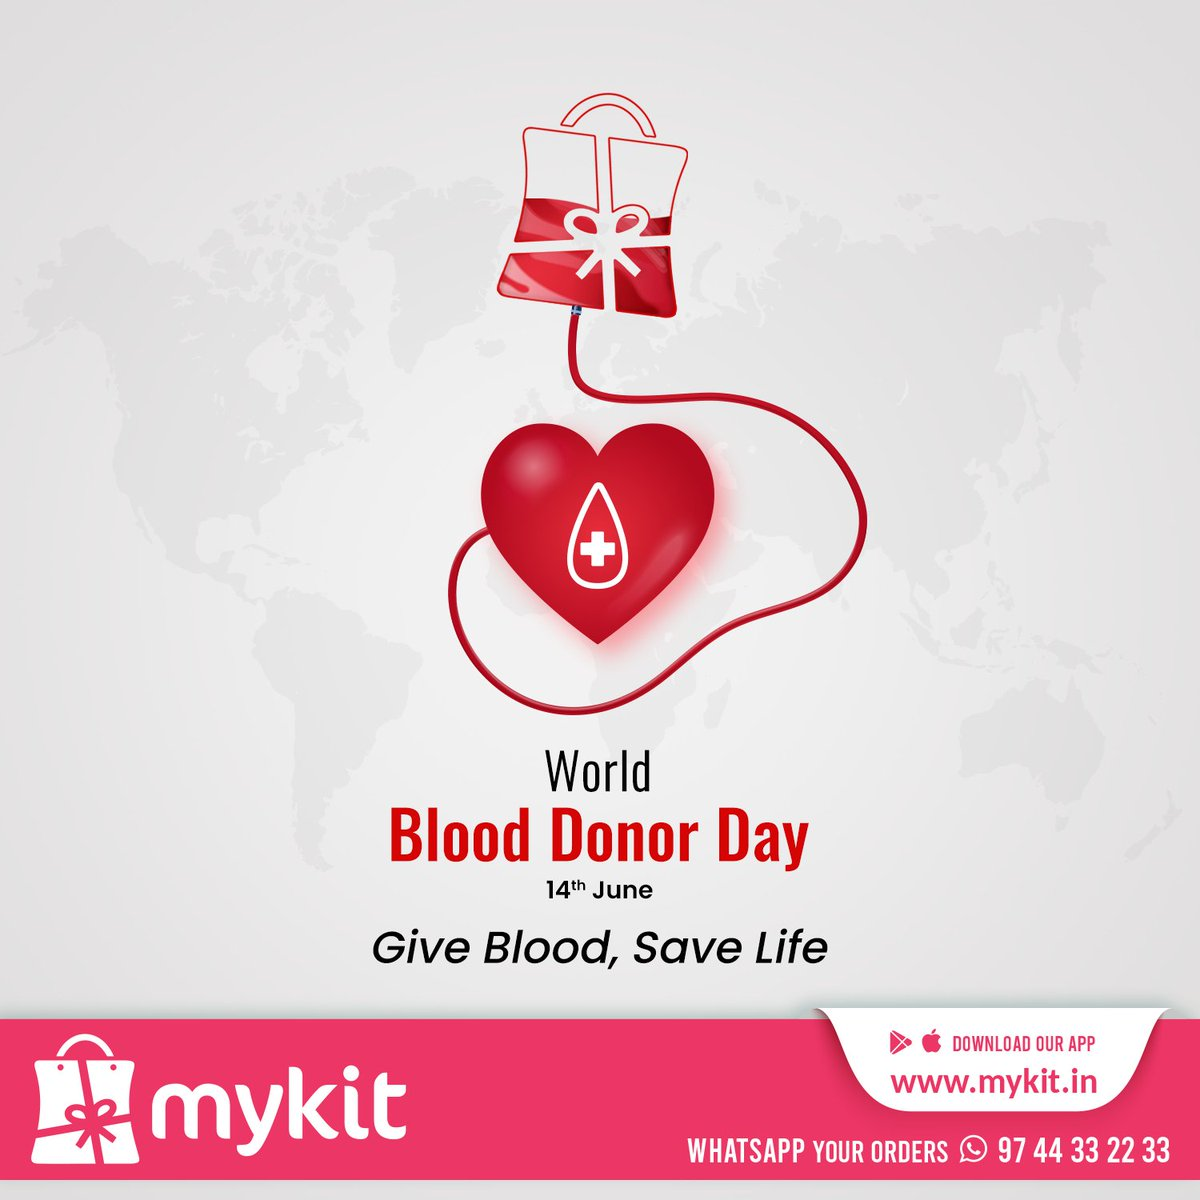 Give Blood, Save Life World Blood Donor Day  #mykitcart #mykit  #worldblooddonorday #blooddonor #blooddonation #brandyourhome #kannur #kerala https://t.co/7jZzug1p9Y